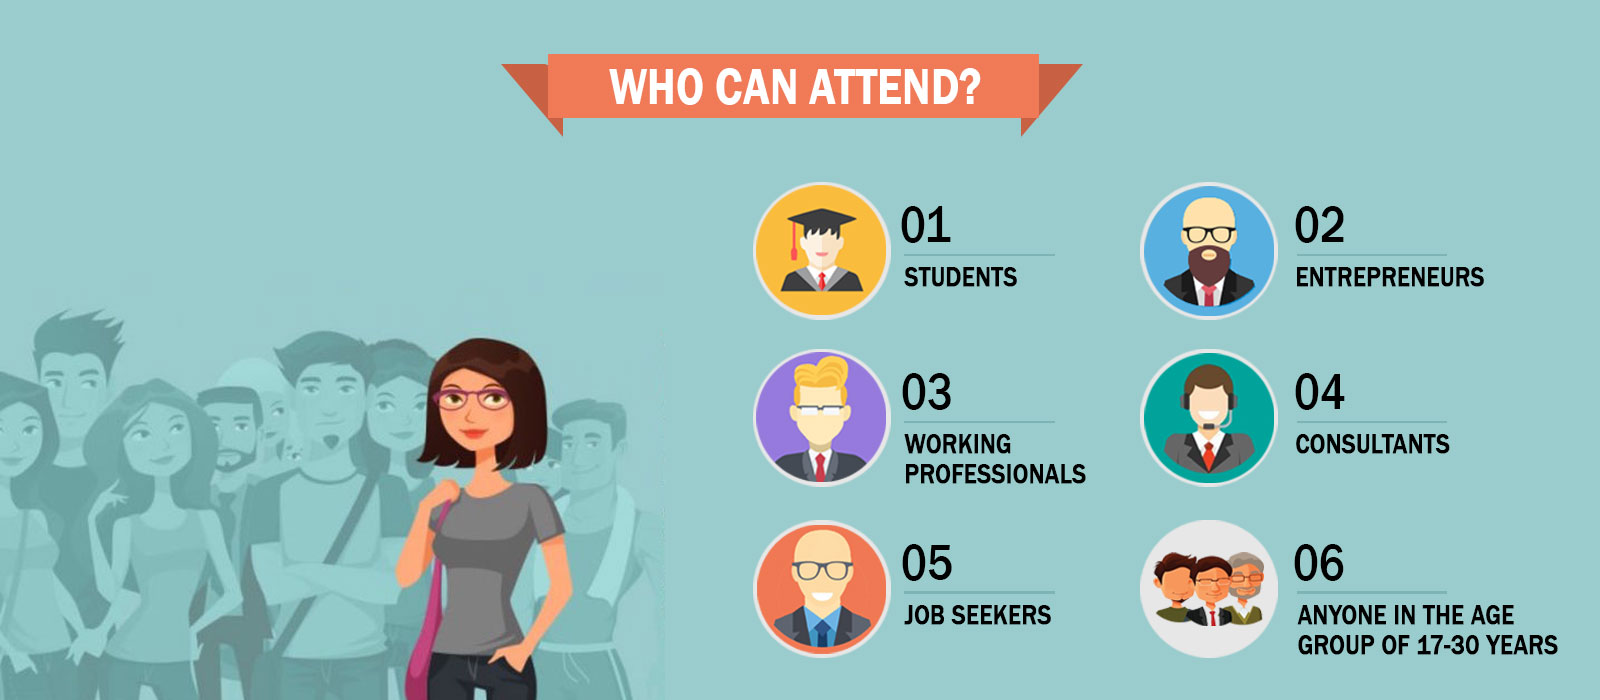 who-can-attend